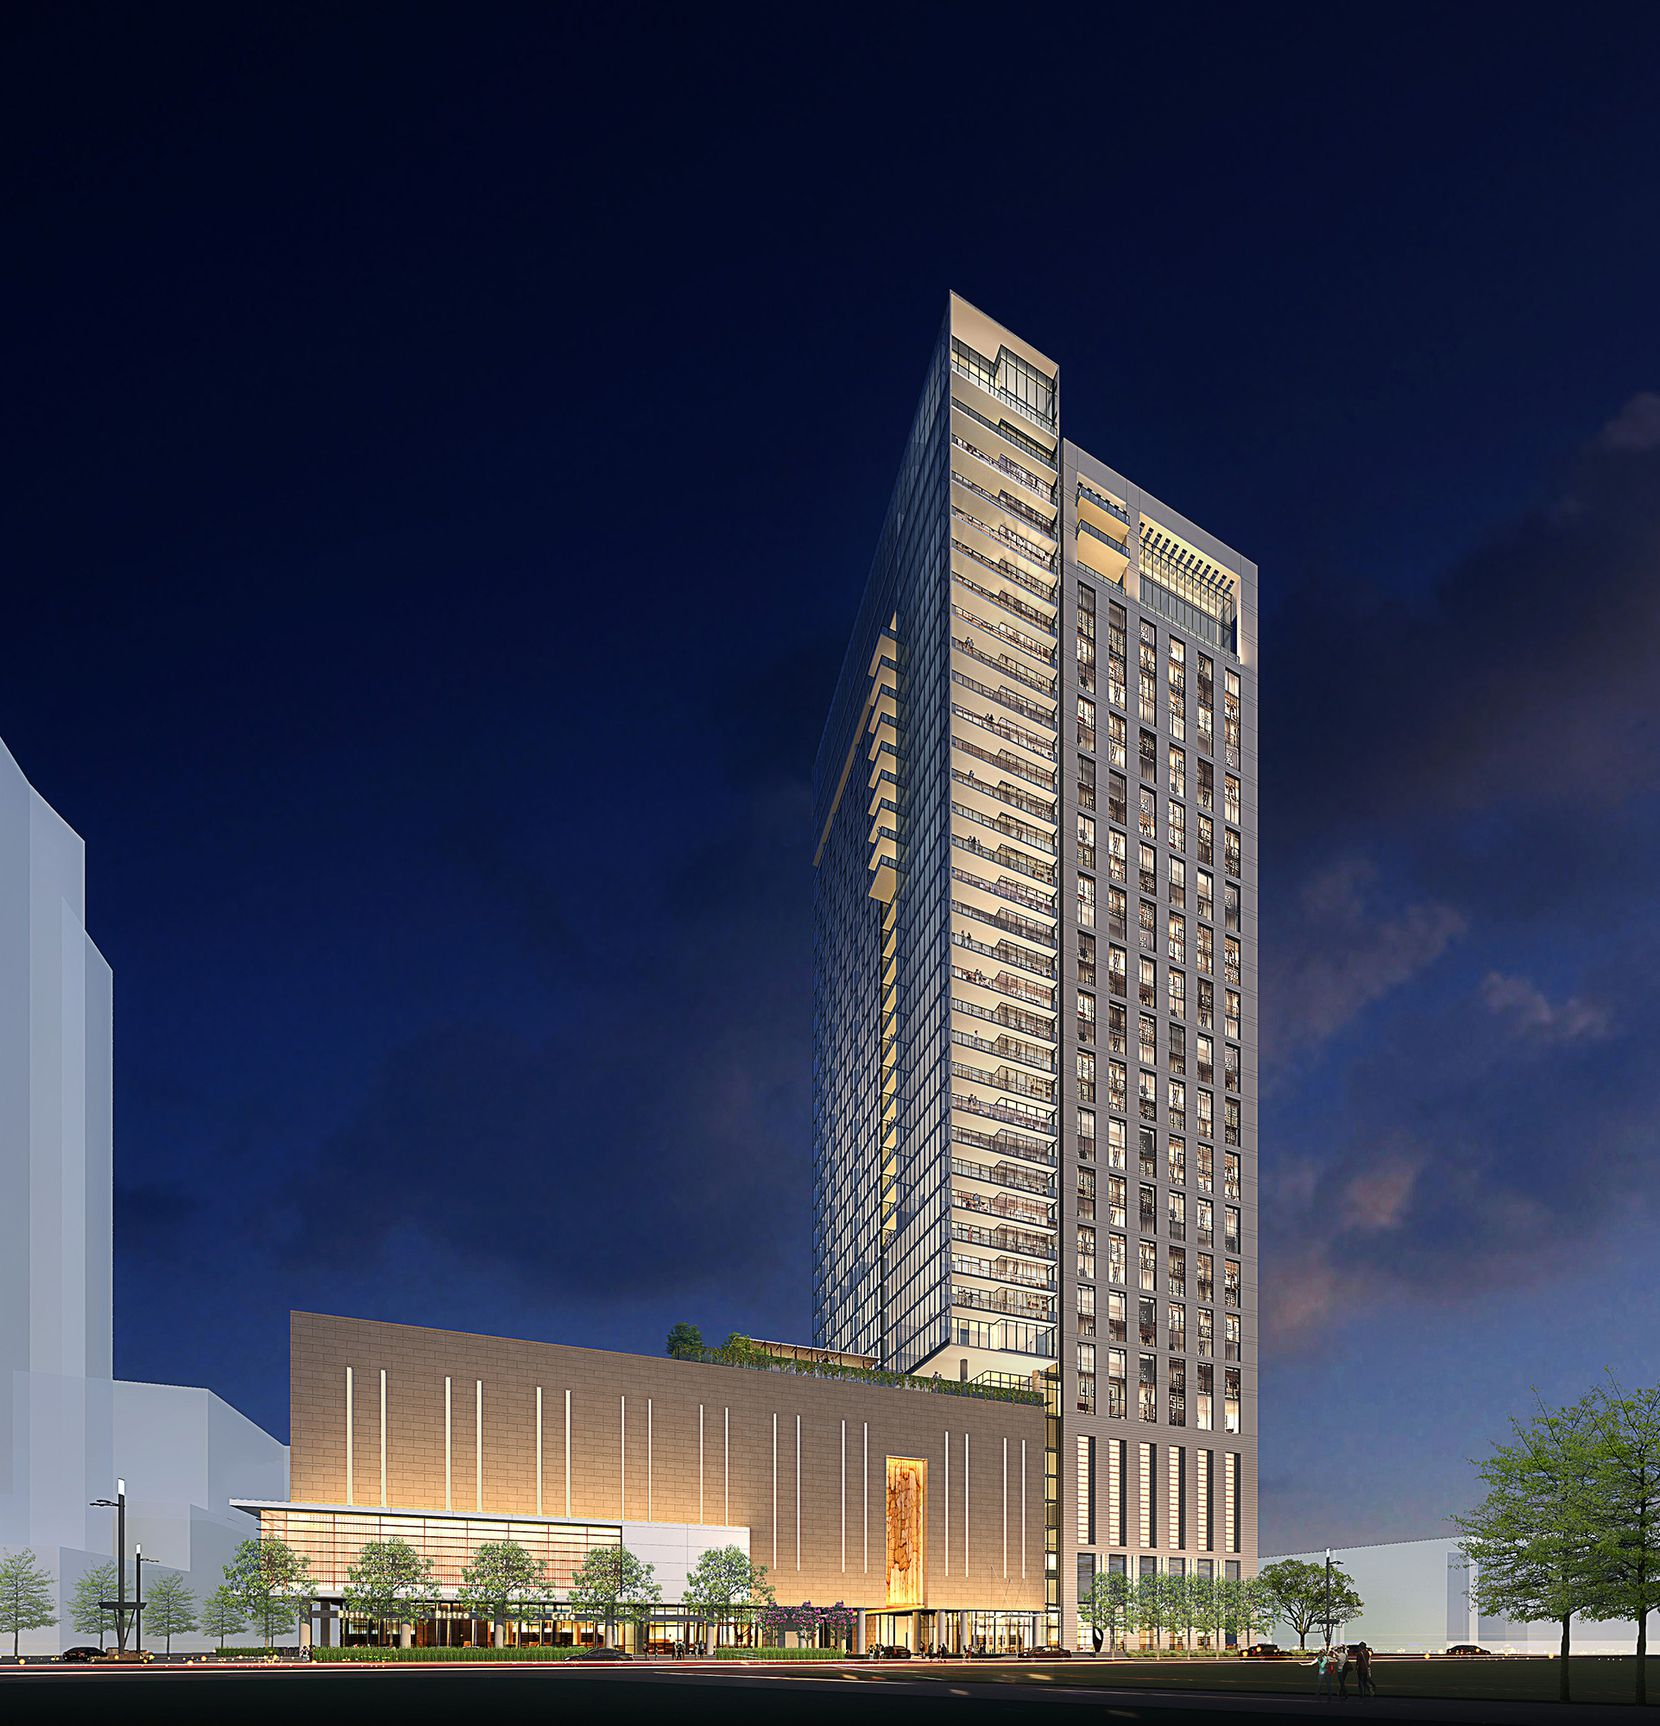 At 39 floors, The Victor apartment tower will be one of the tallest Dallas buildings outside of downtown.